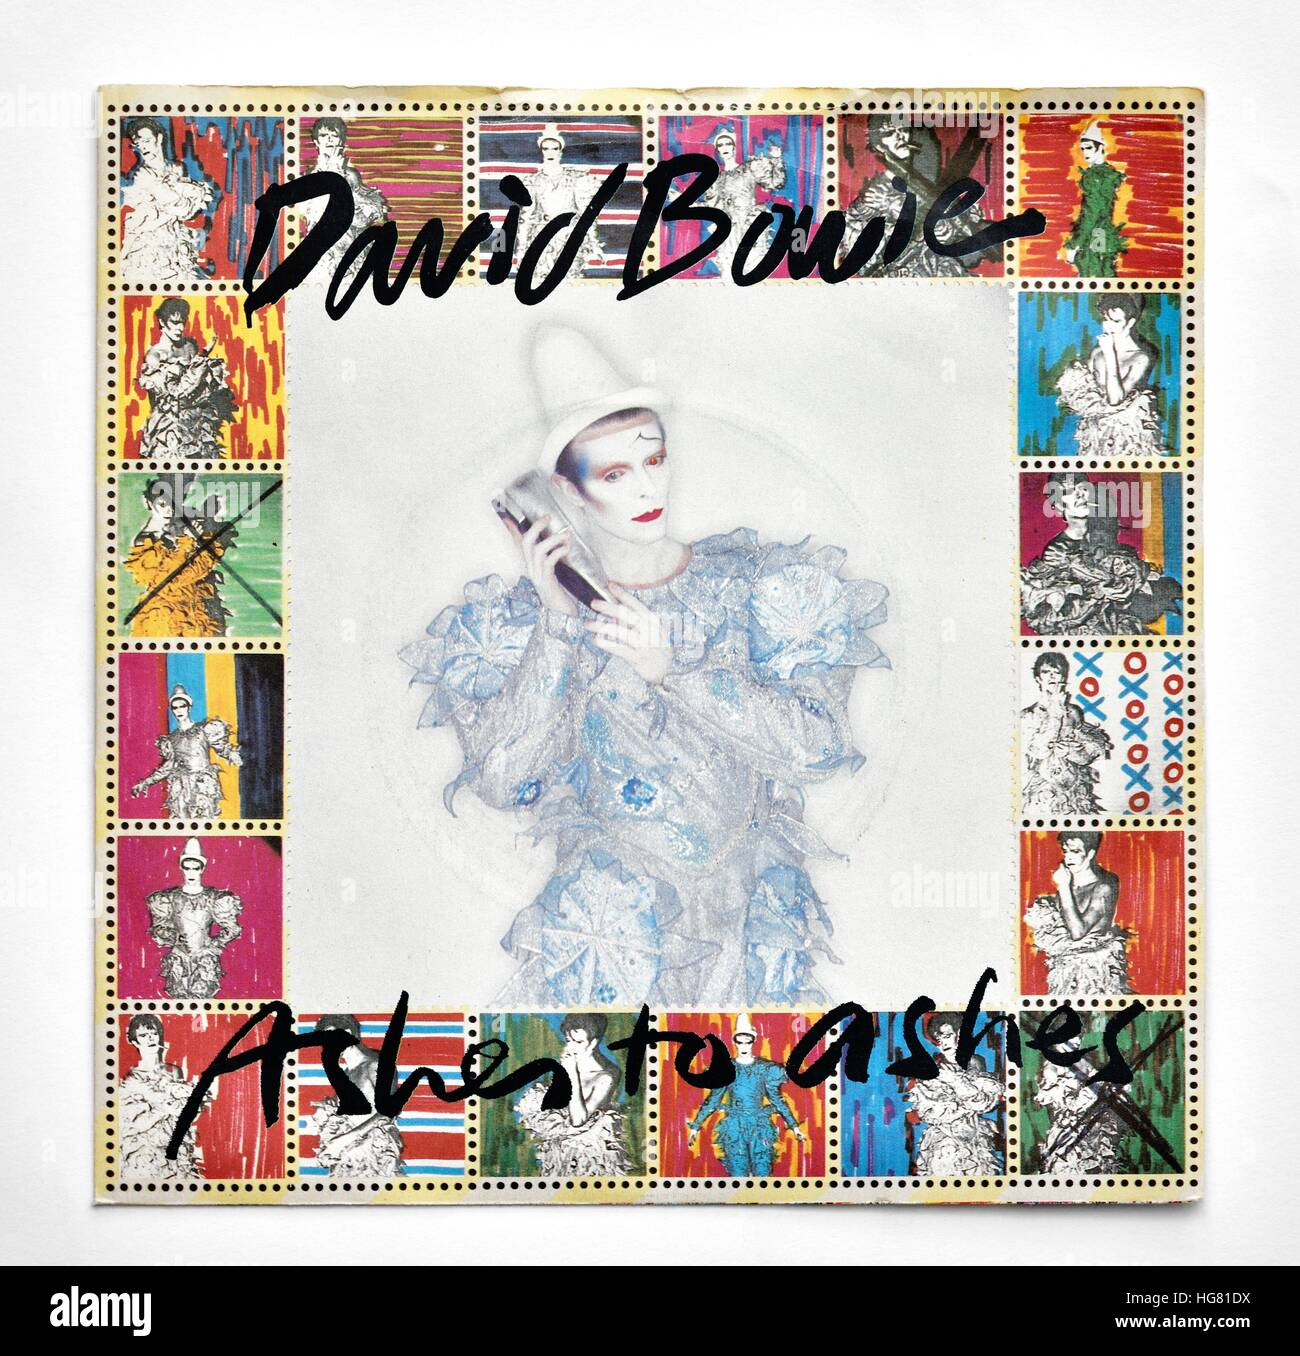 David Bowie Ashes to Ashes single cover Stock Photo: 130483862 - Alamy